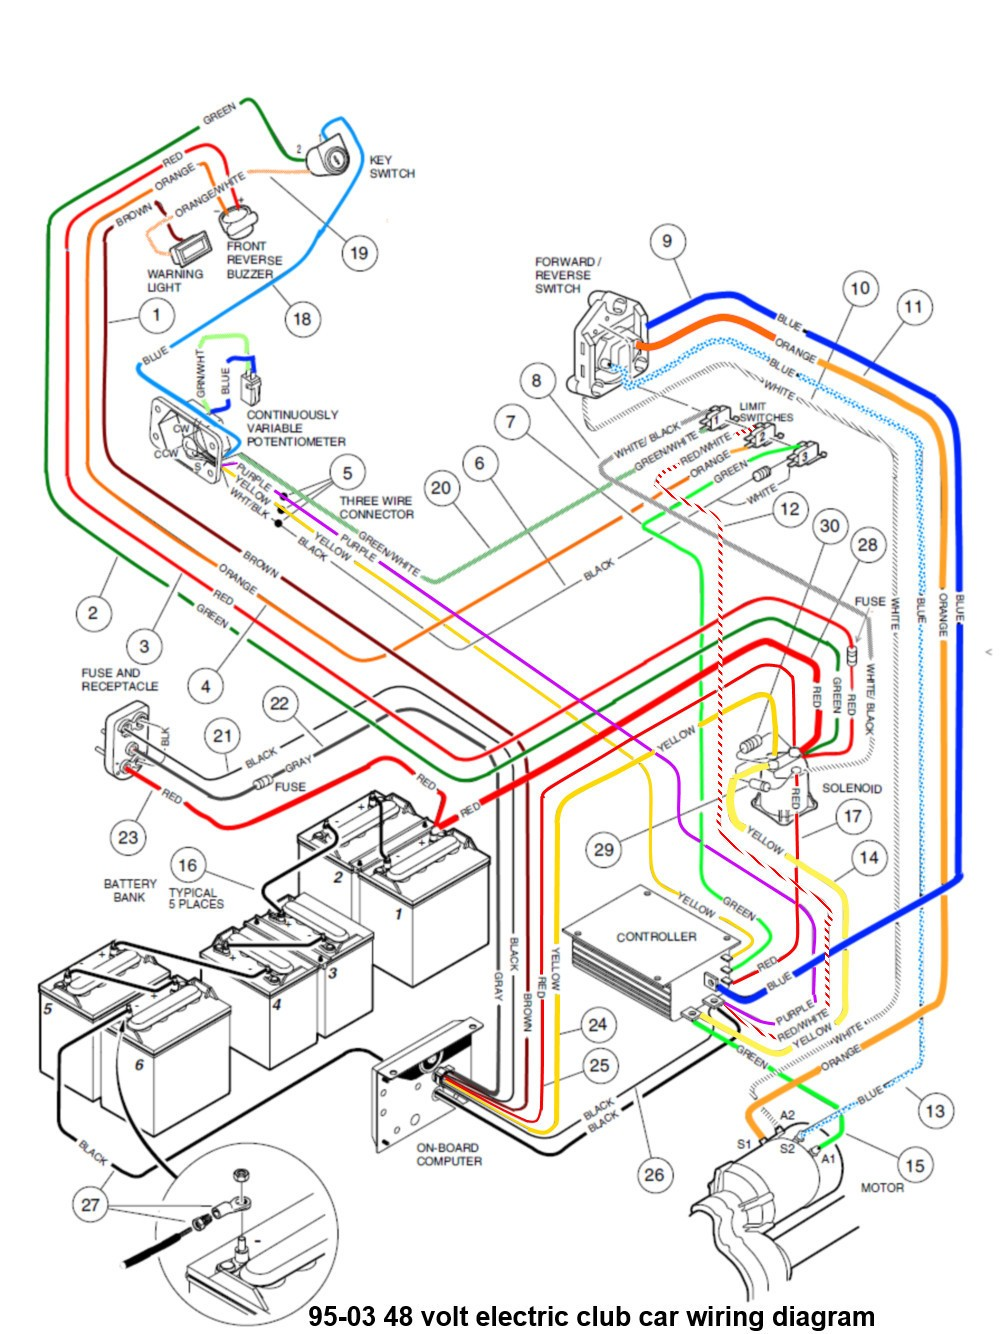 Club Car Wiring Diagram Luxury Wiring Diagram for Club Car Golf Cart Gooddy org Electric 2009 – Diagram